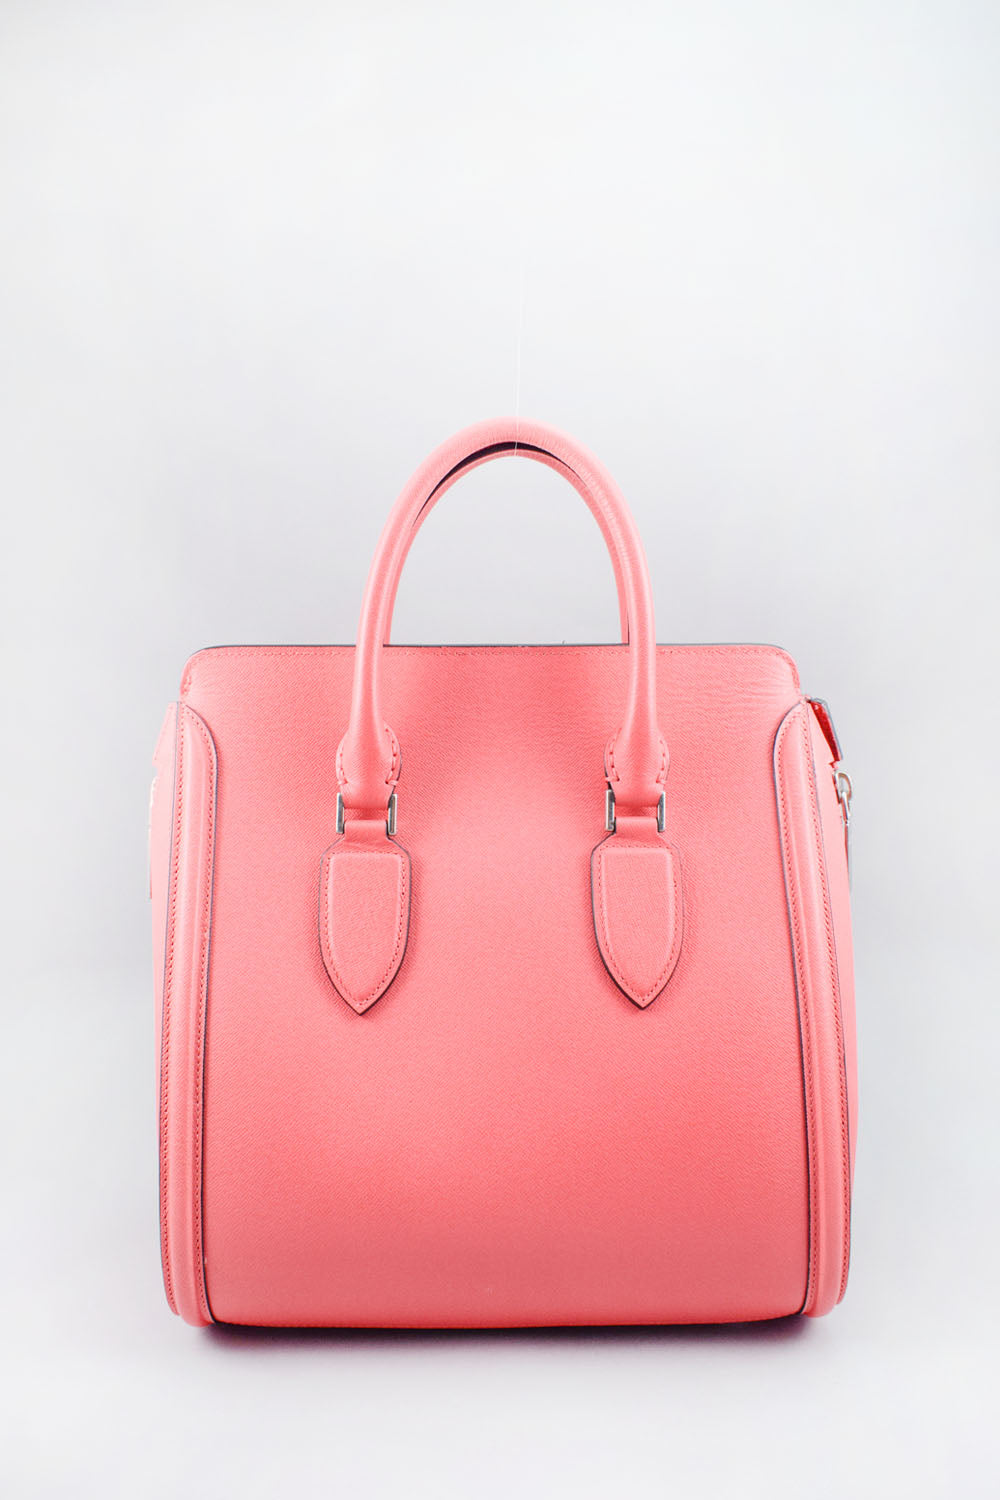 Alexander McQueen Pink Large Leather Heroine Bag